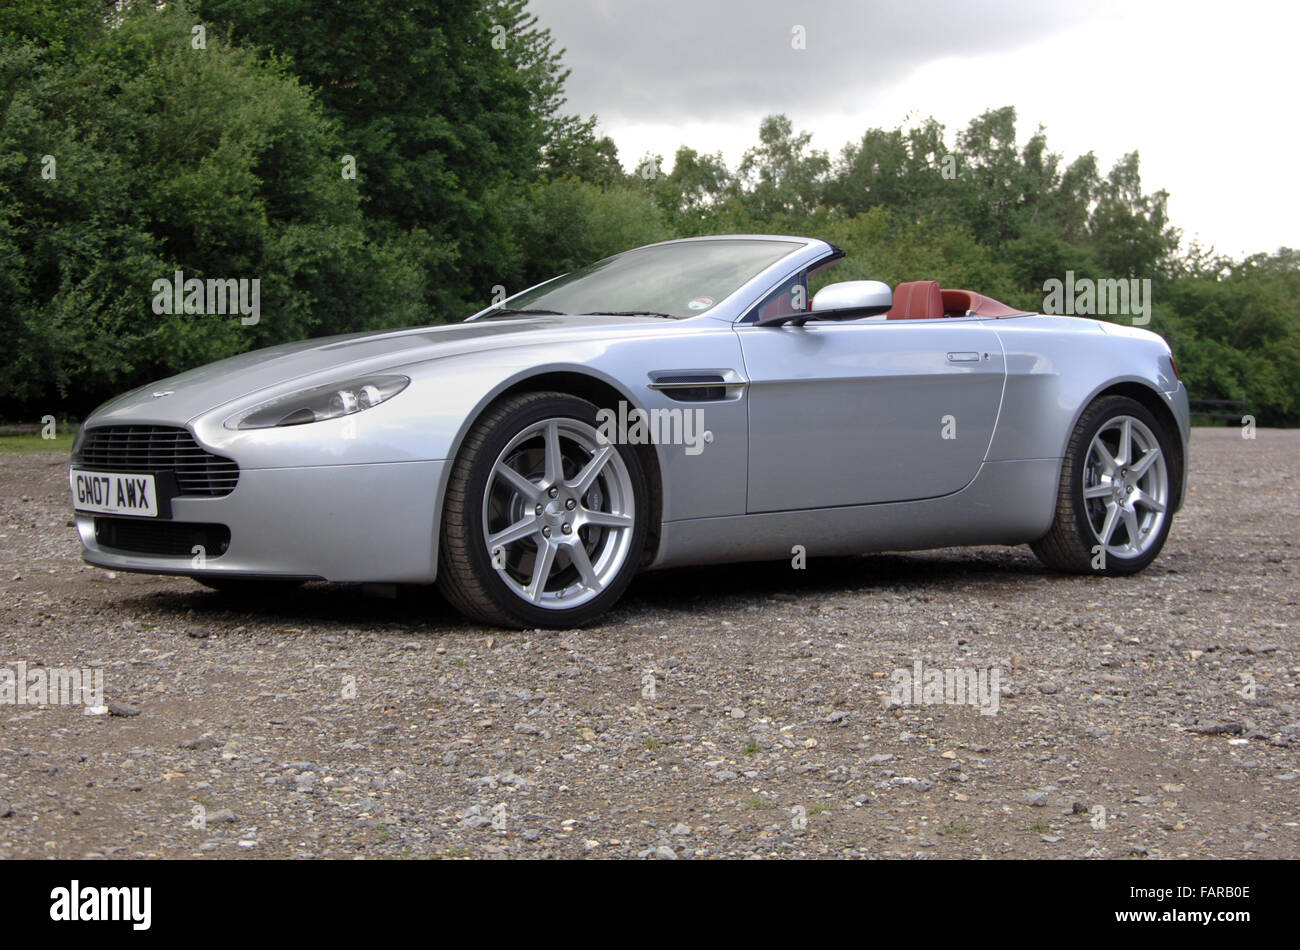 2007 Aston Martin Vantage Convertible Super Car Stock Photo Alamy